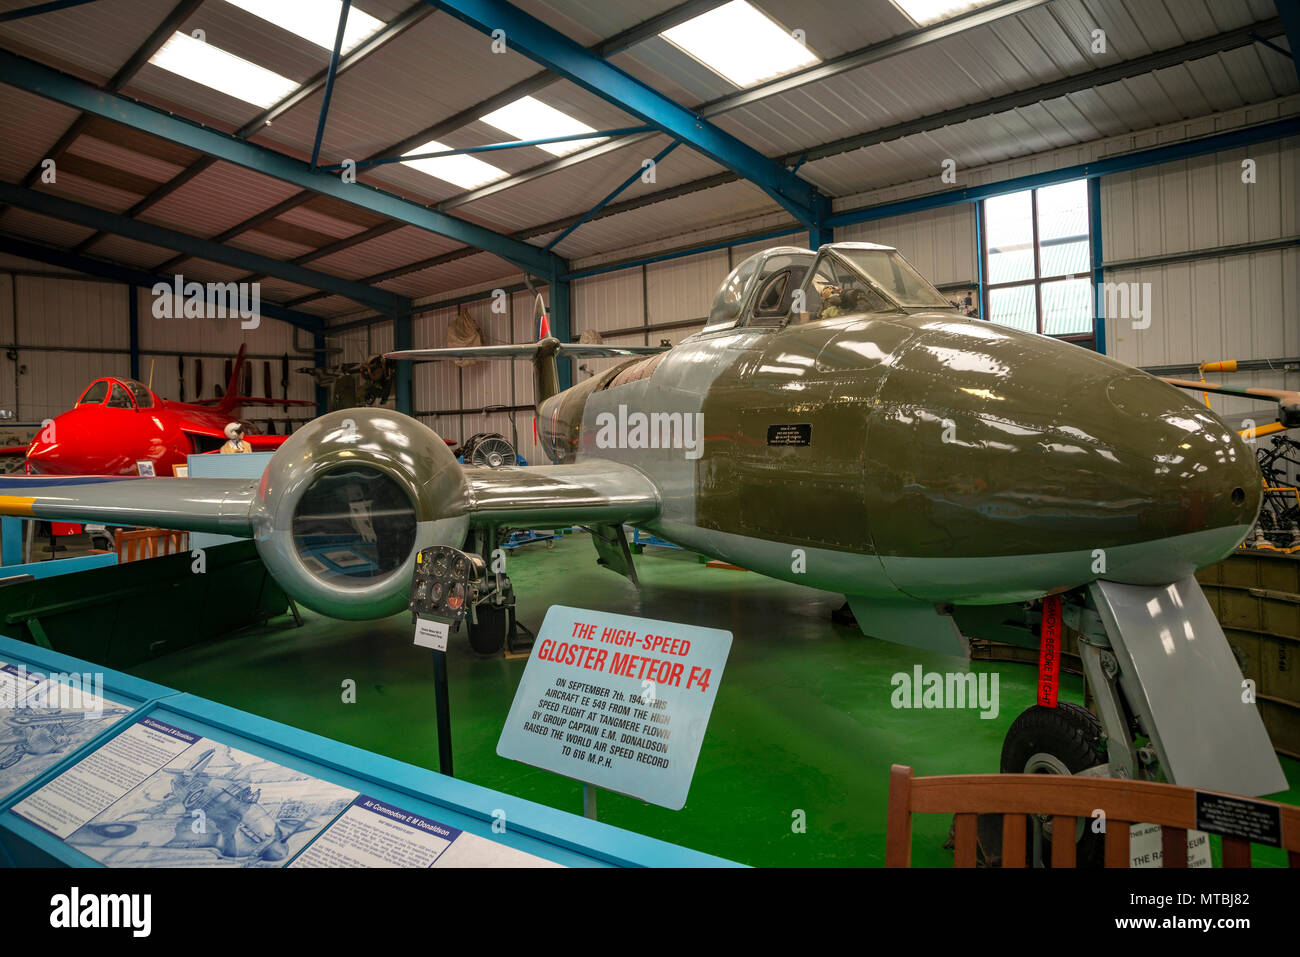 Tangmere Aviation Museum near Chichester, West Sussex, UK - Stock Image